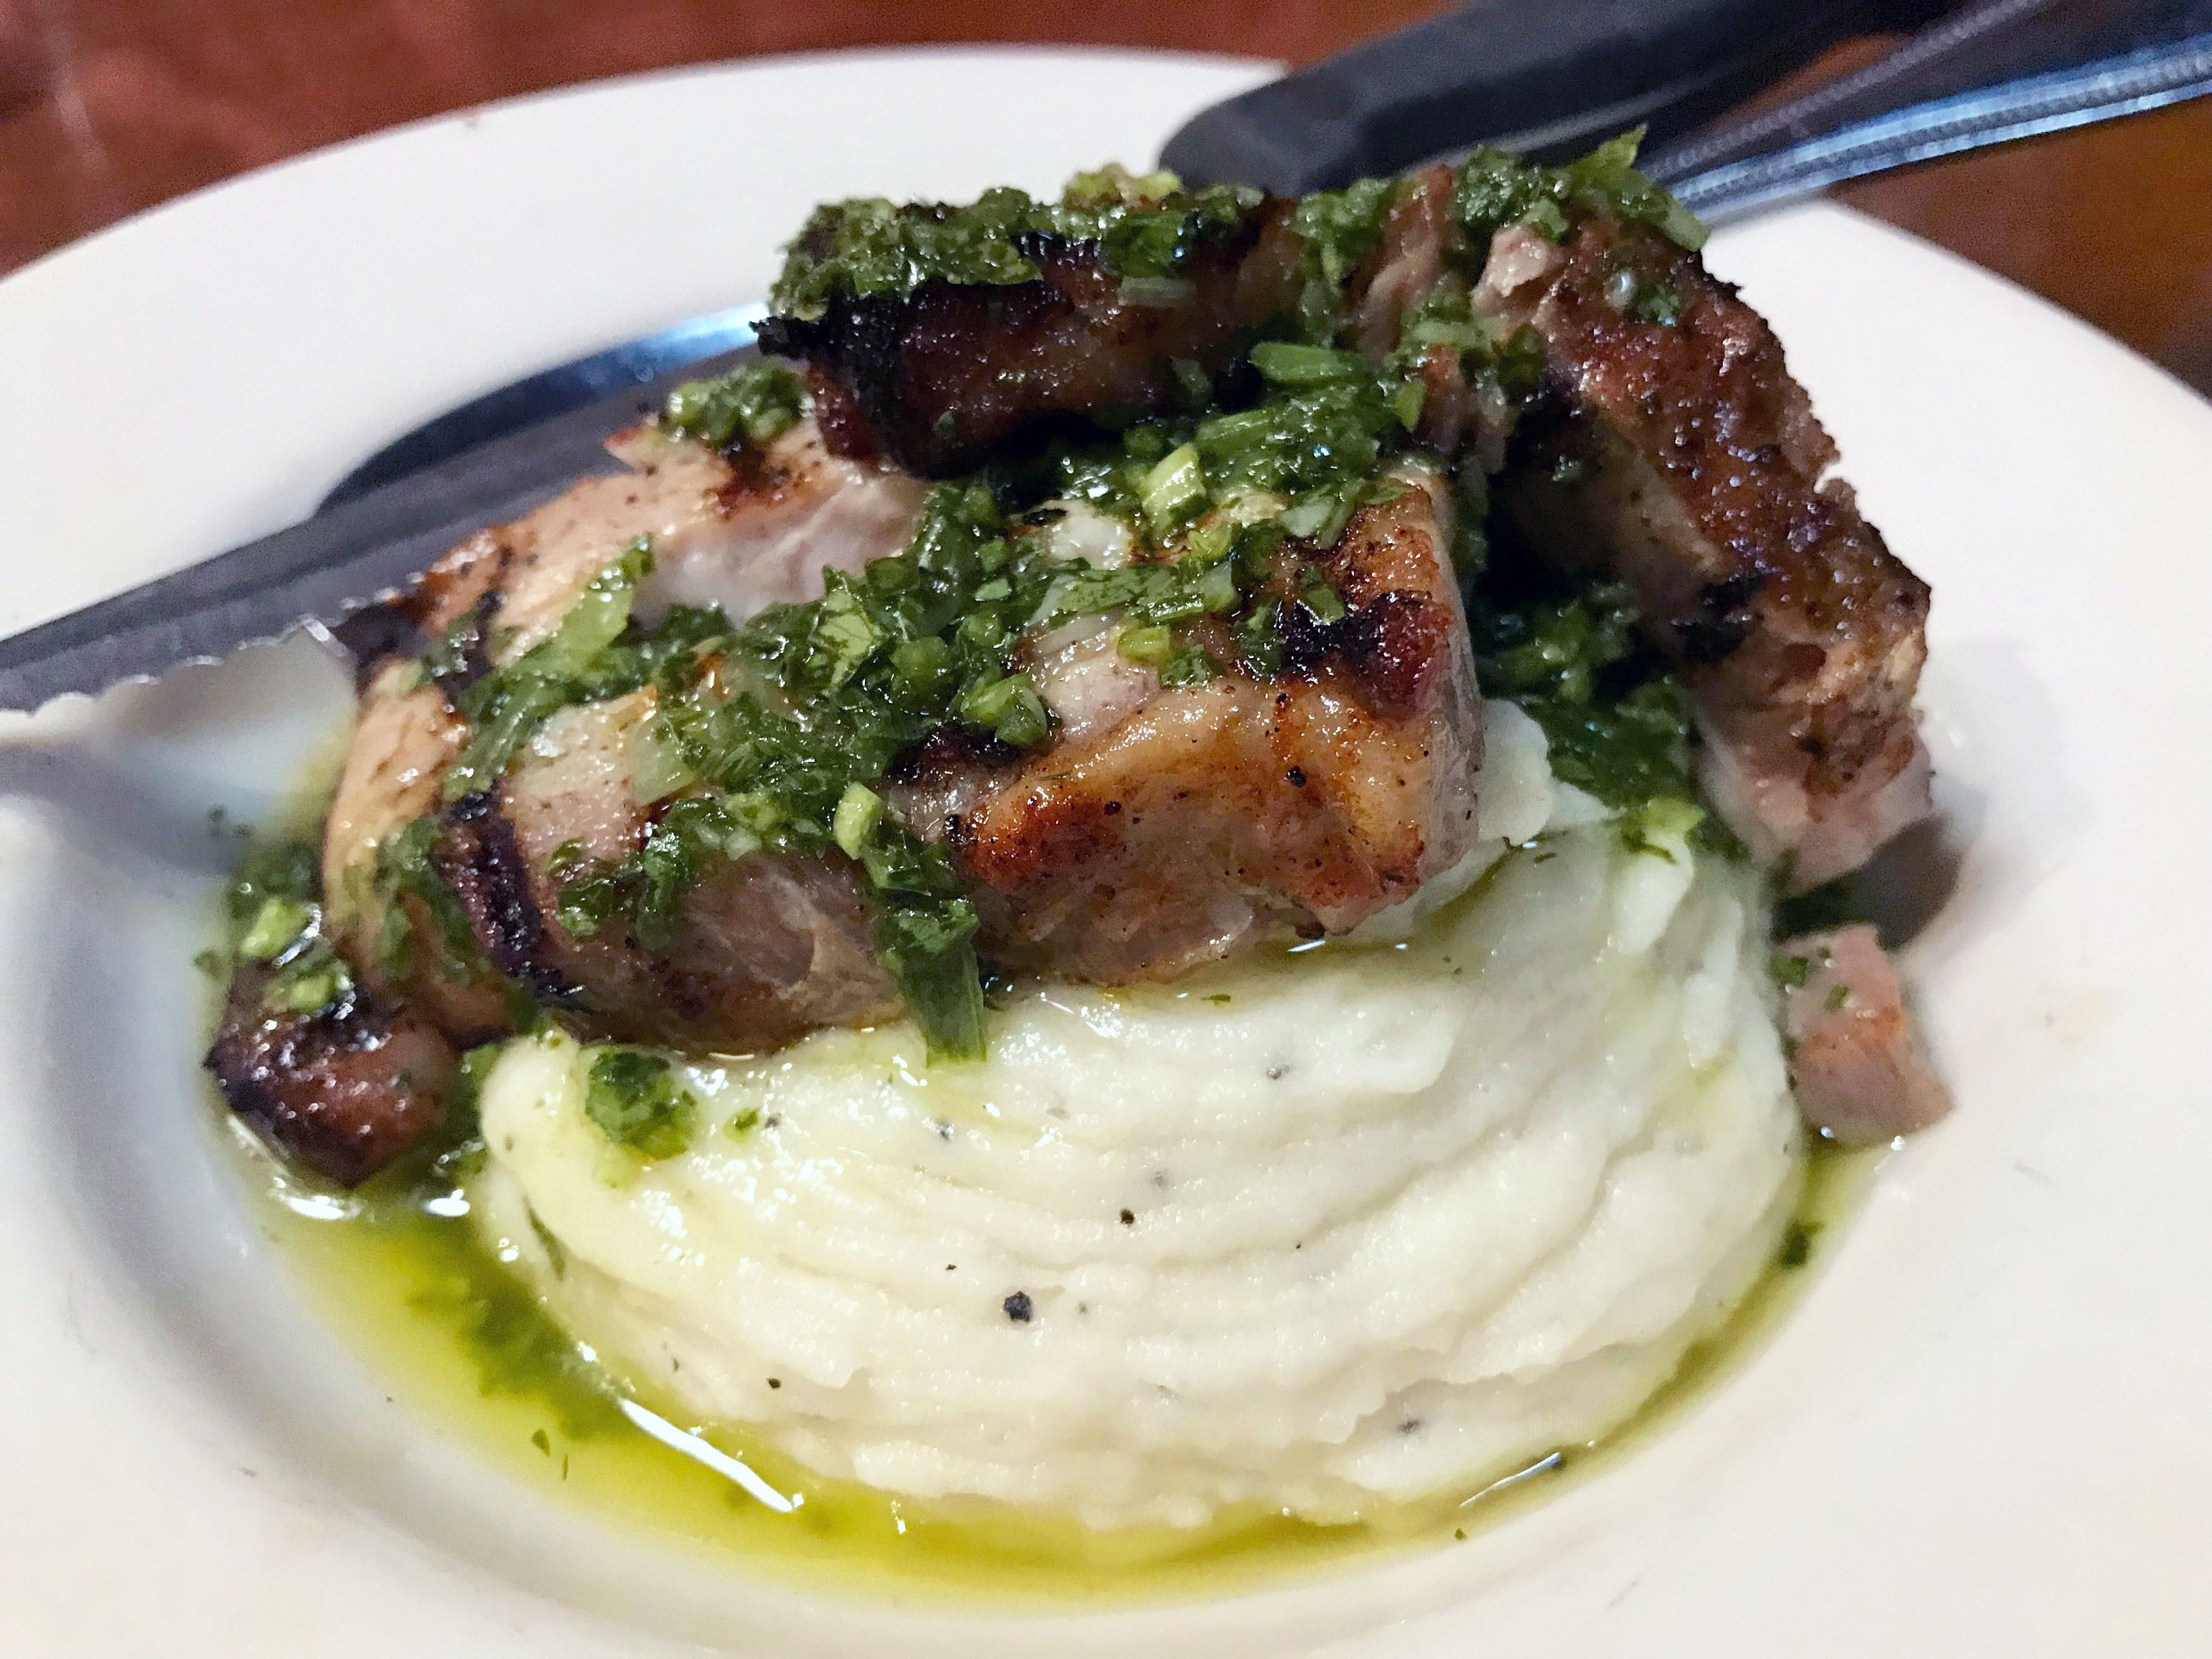 Pork belly from Maple Creek Farm in Waukesha is sauced with chimichurri and draped over garlic mashed potatoes, a special at La Merenda, 125 E. National Ave.